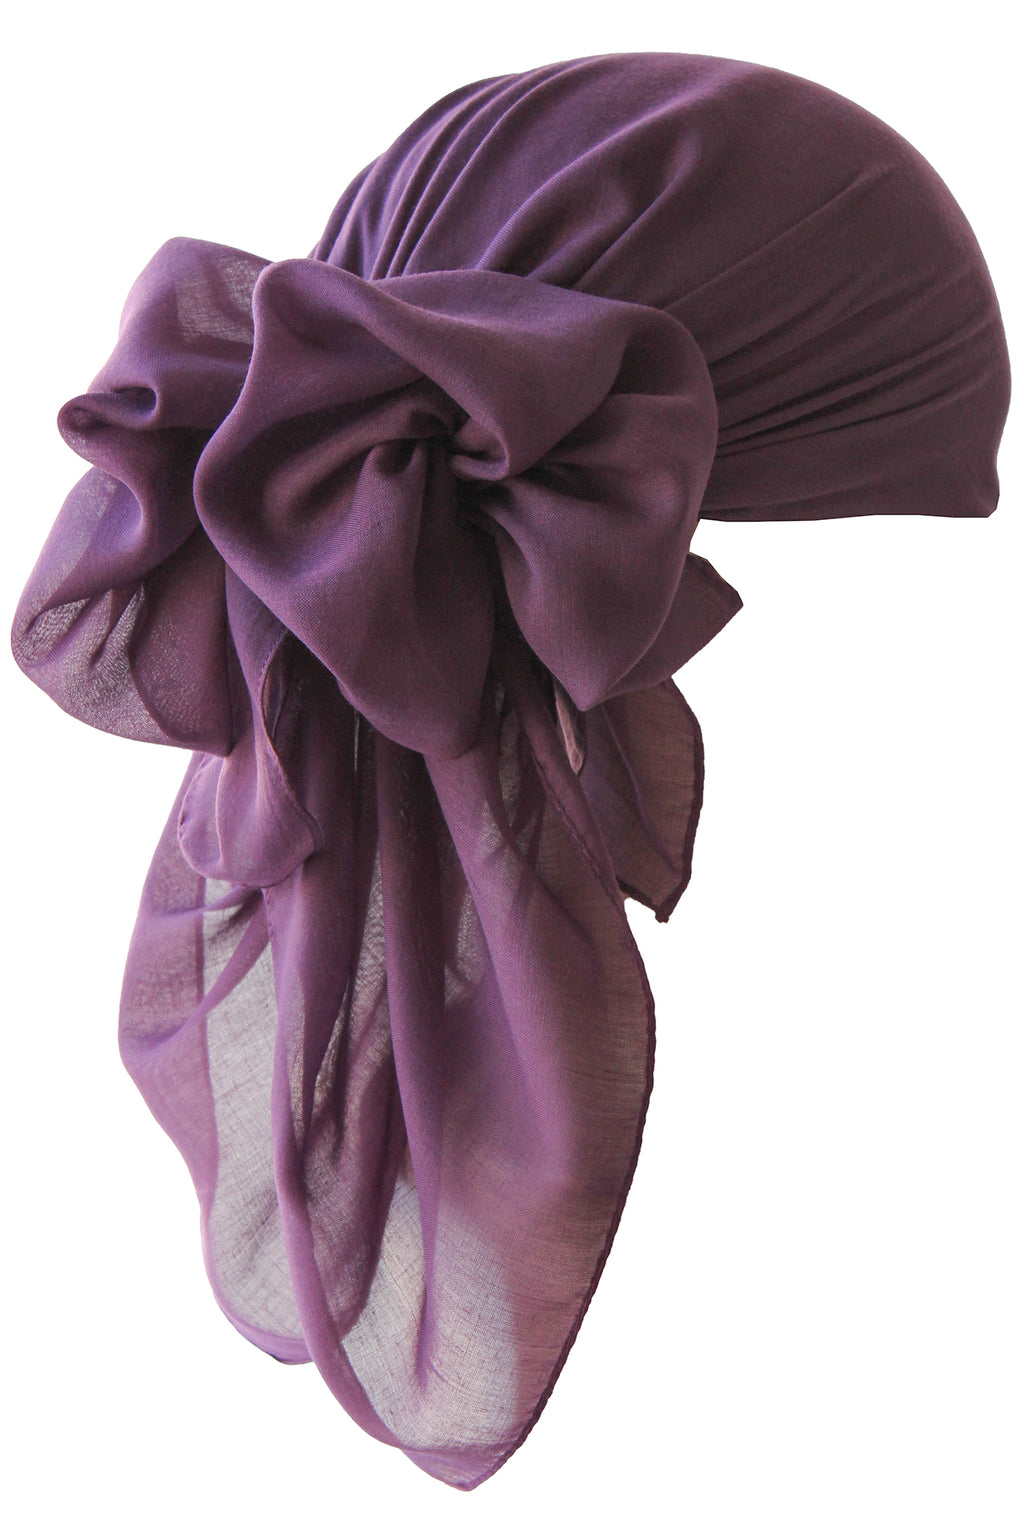 Everyday Square Head Scarf - Plain Mulberry